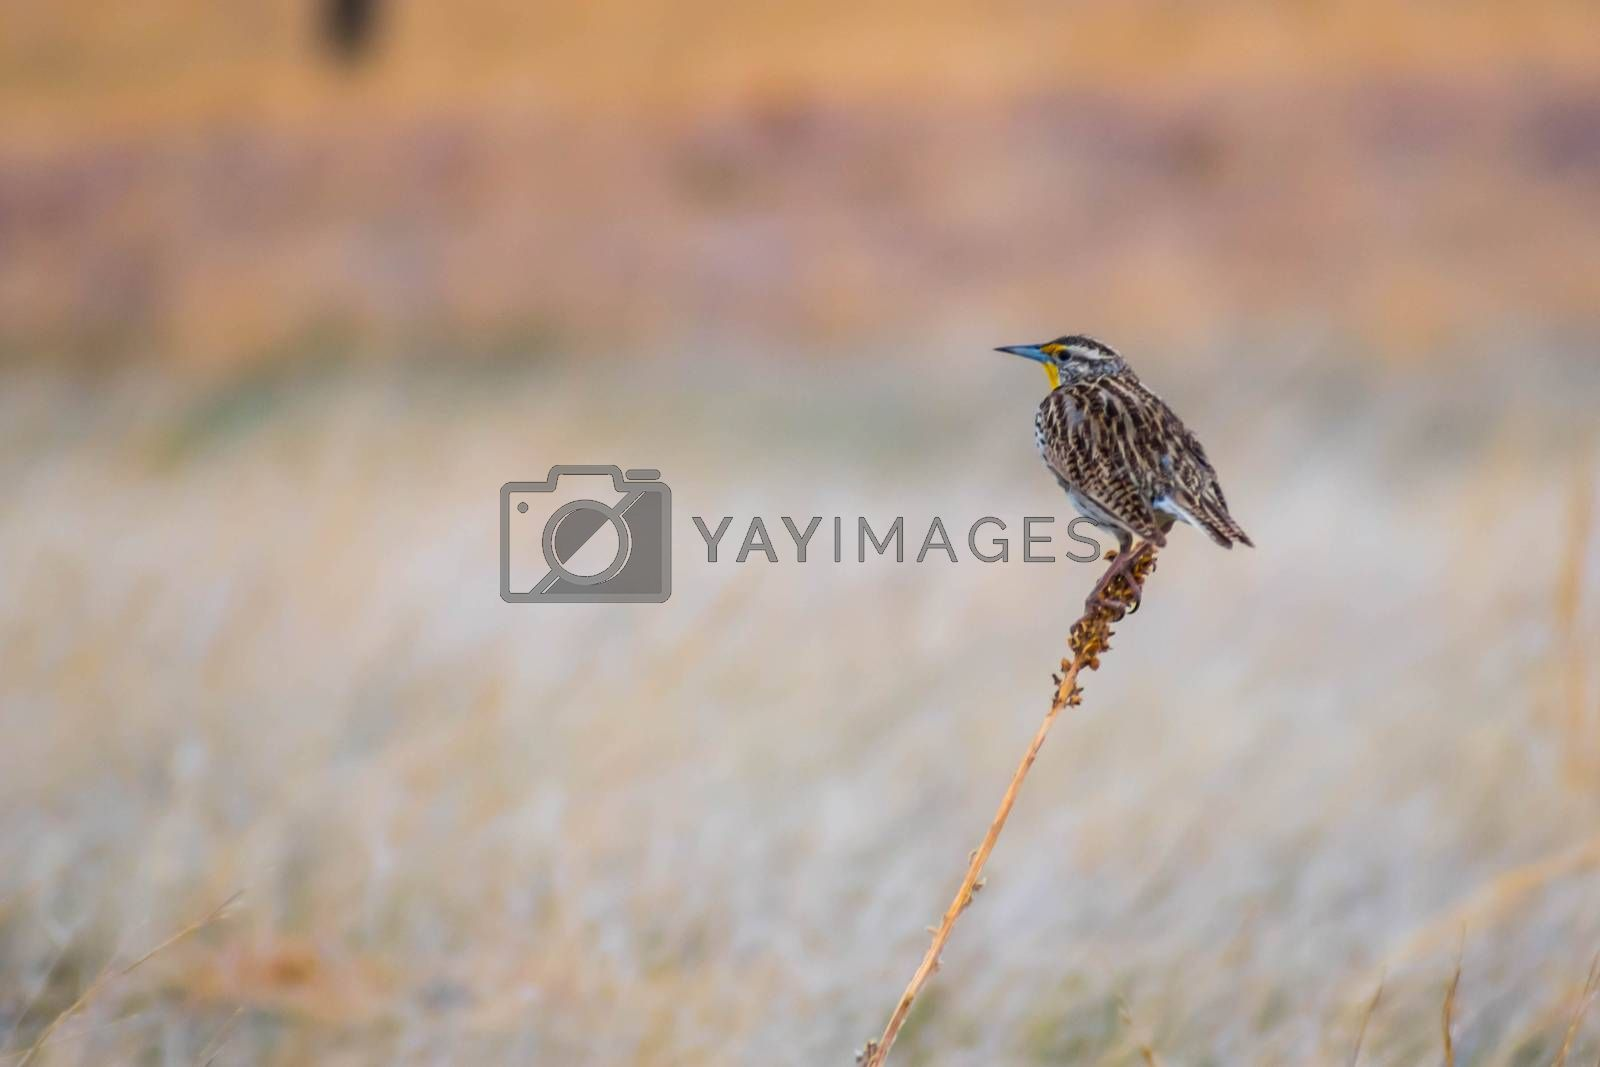 A medium-sized Icterid bird chilling on top of branch while enjoying the view of nature